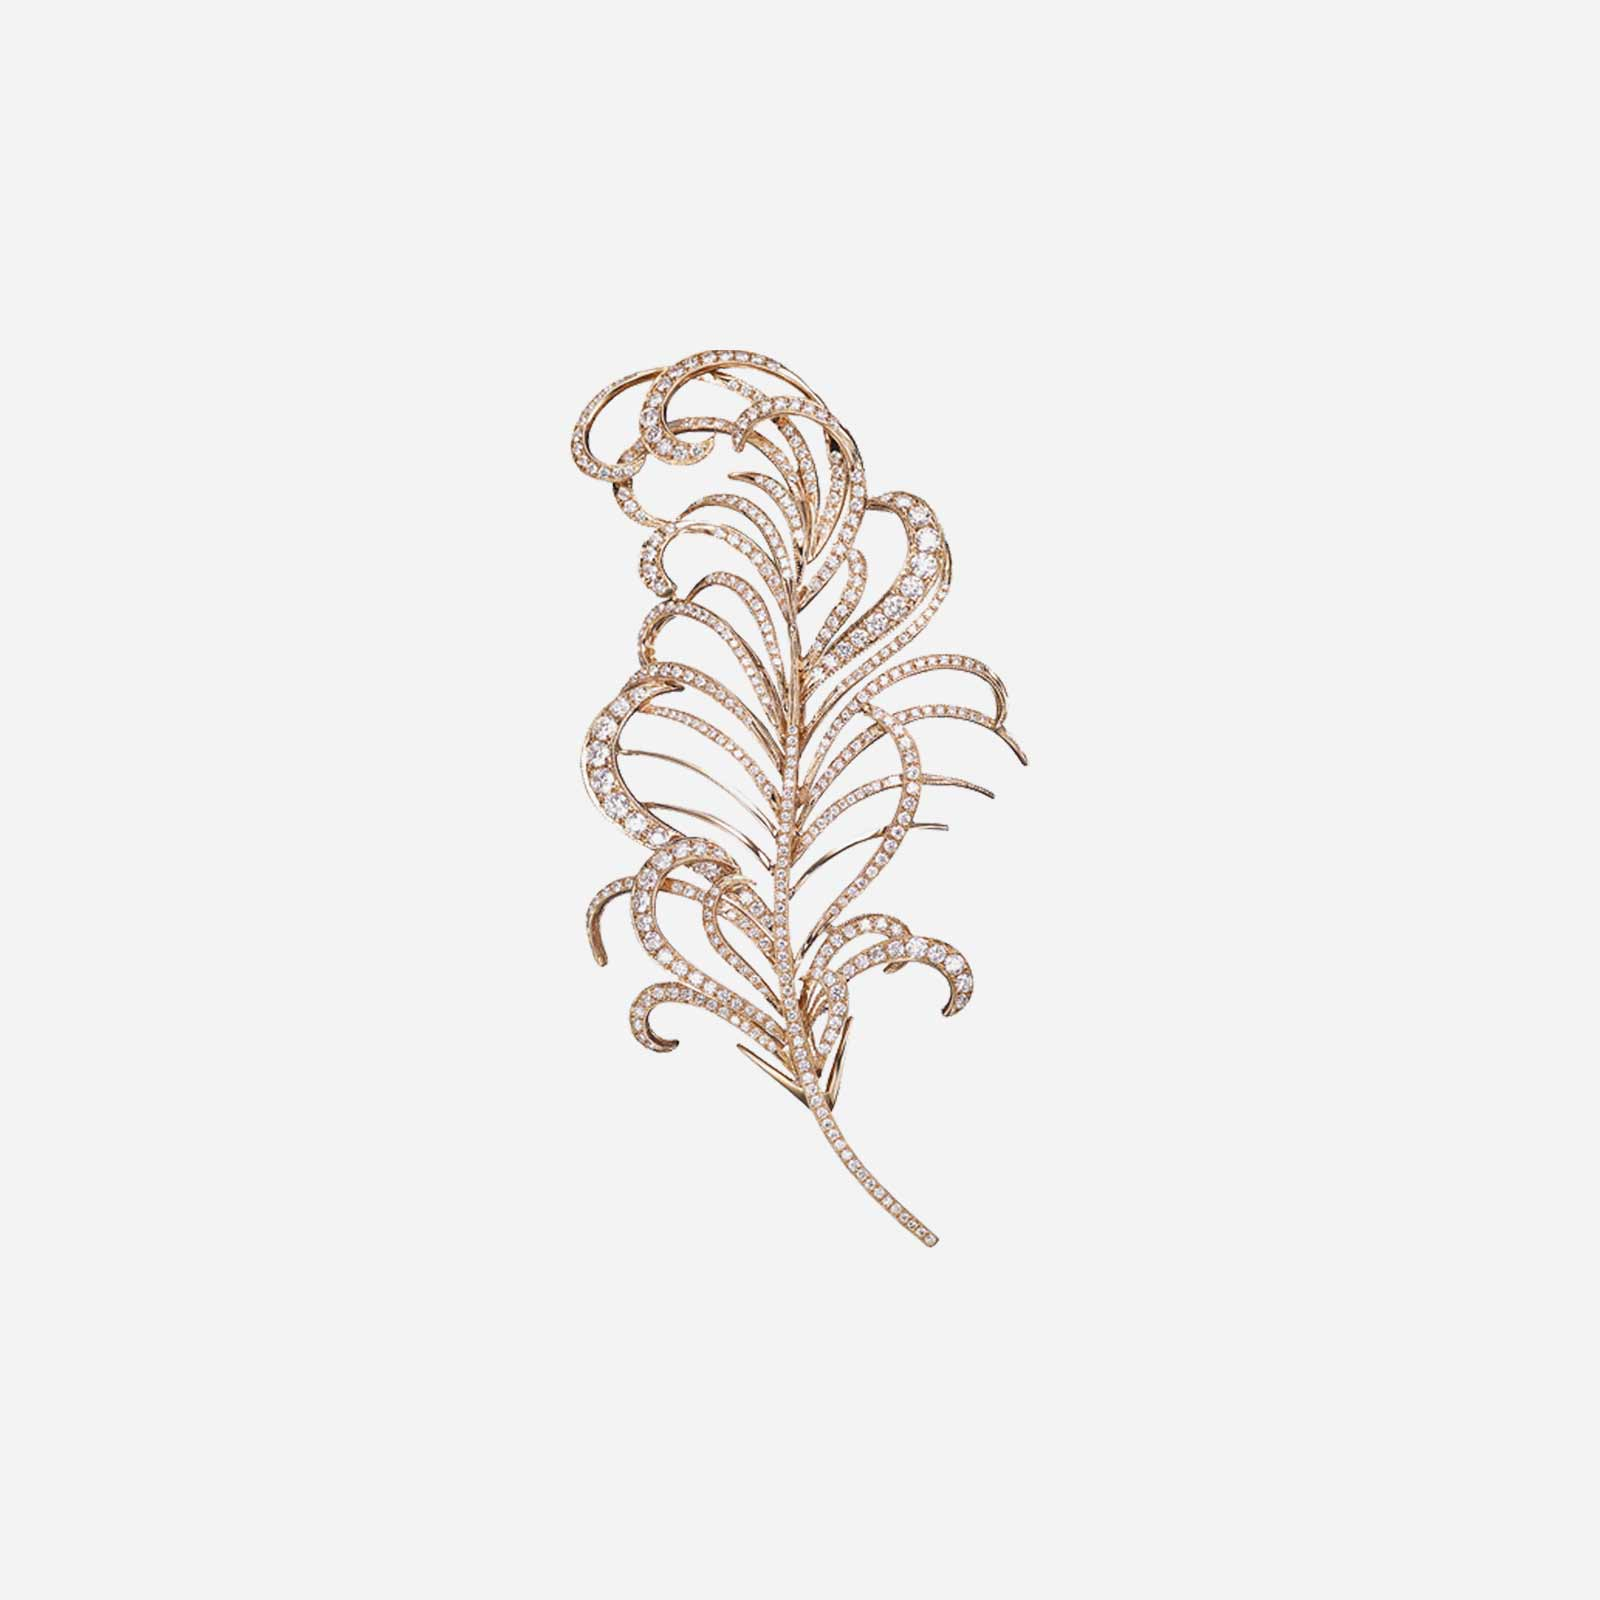 The Queen's Feather Brooch